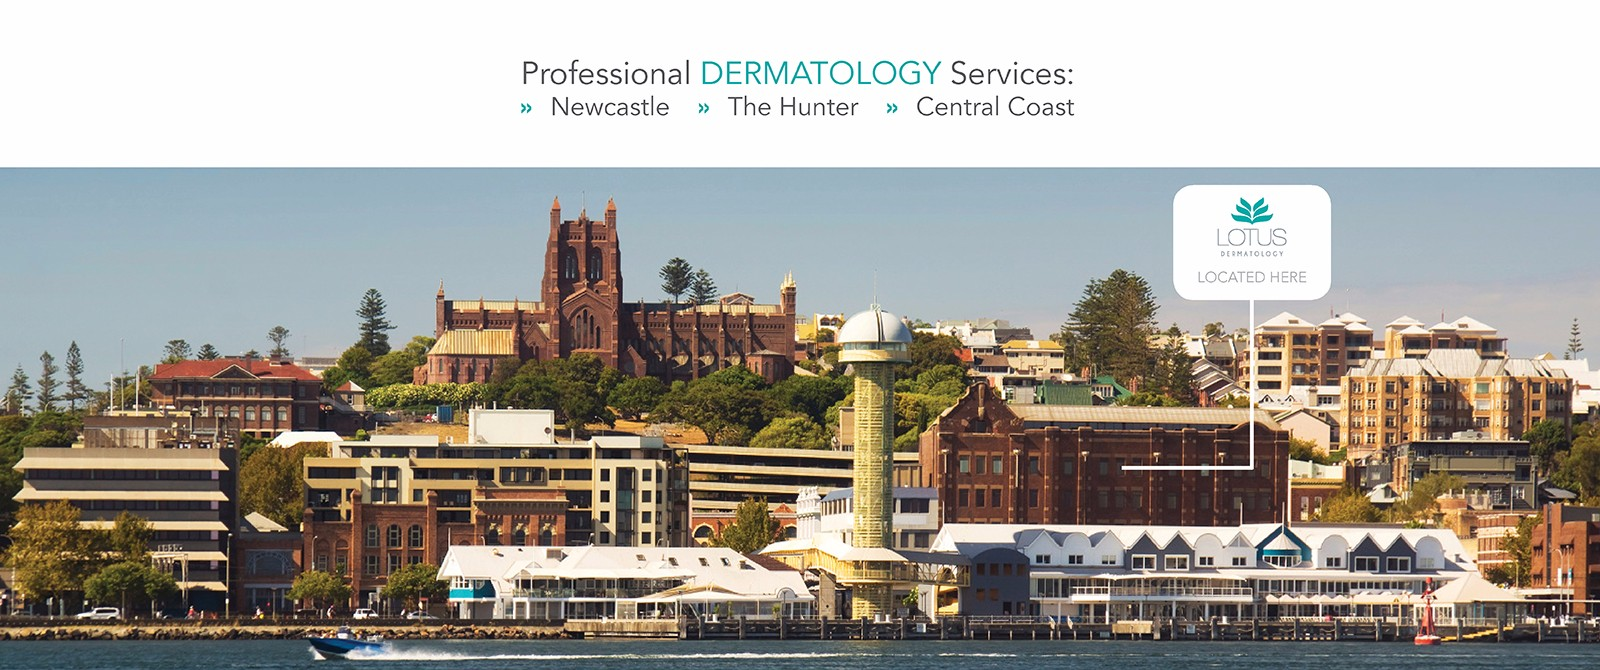 Professional Dermatology in Newcastle and The Hunter